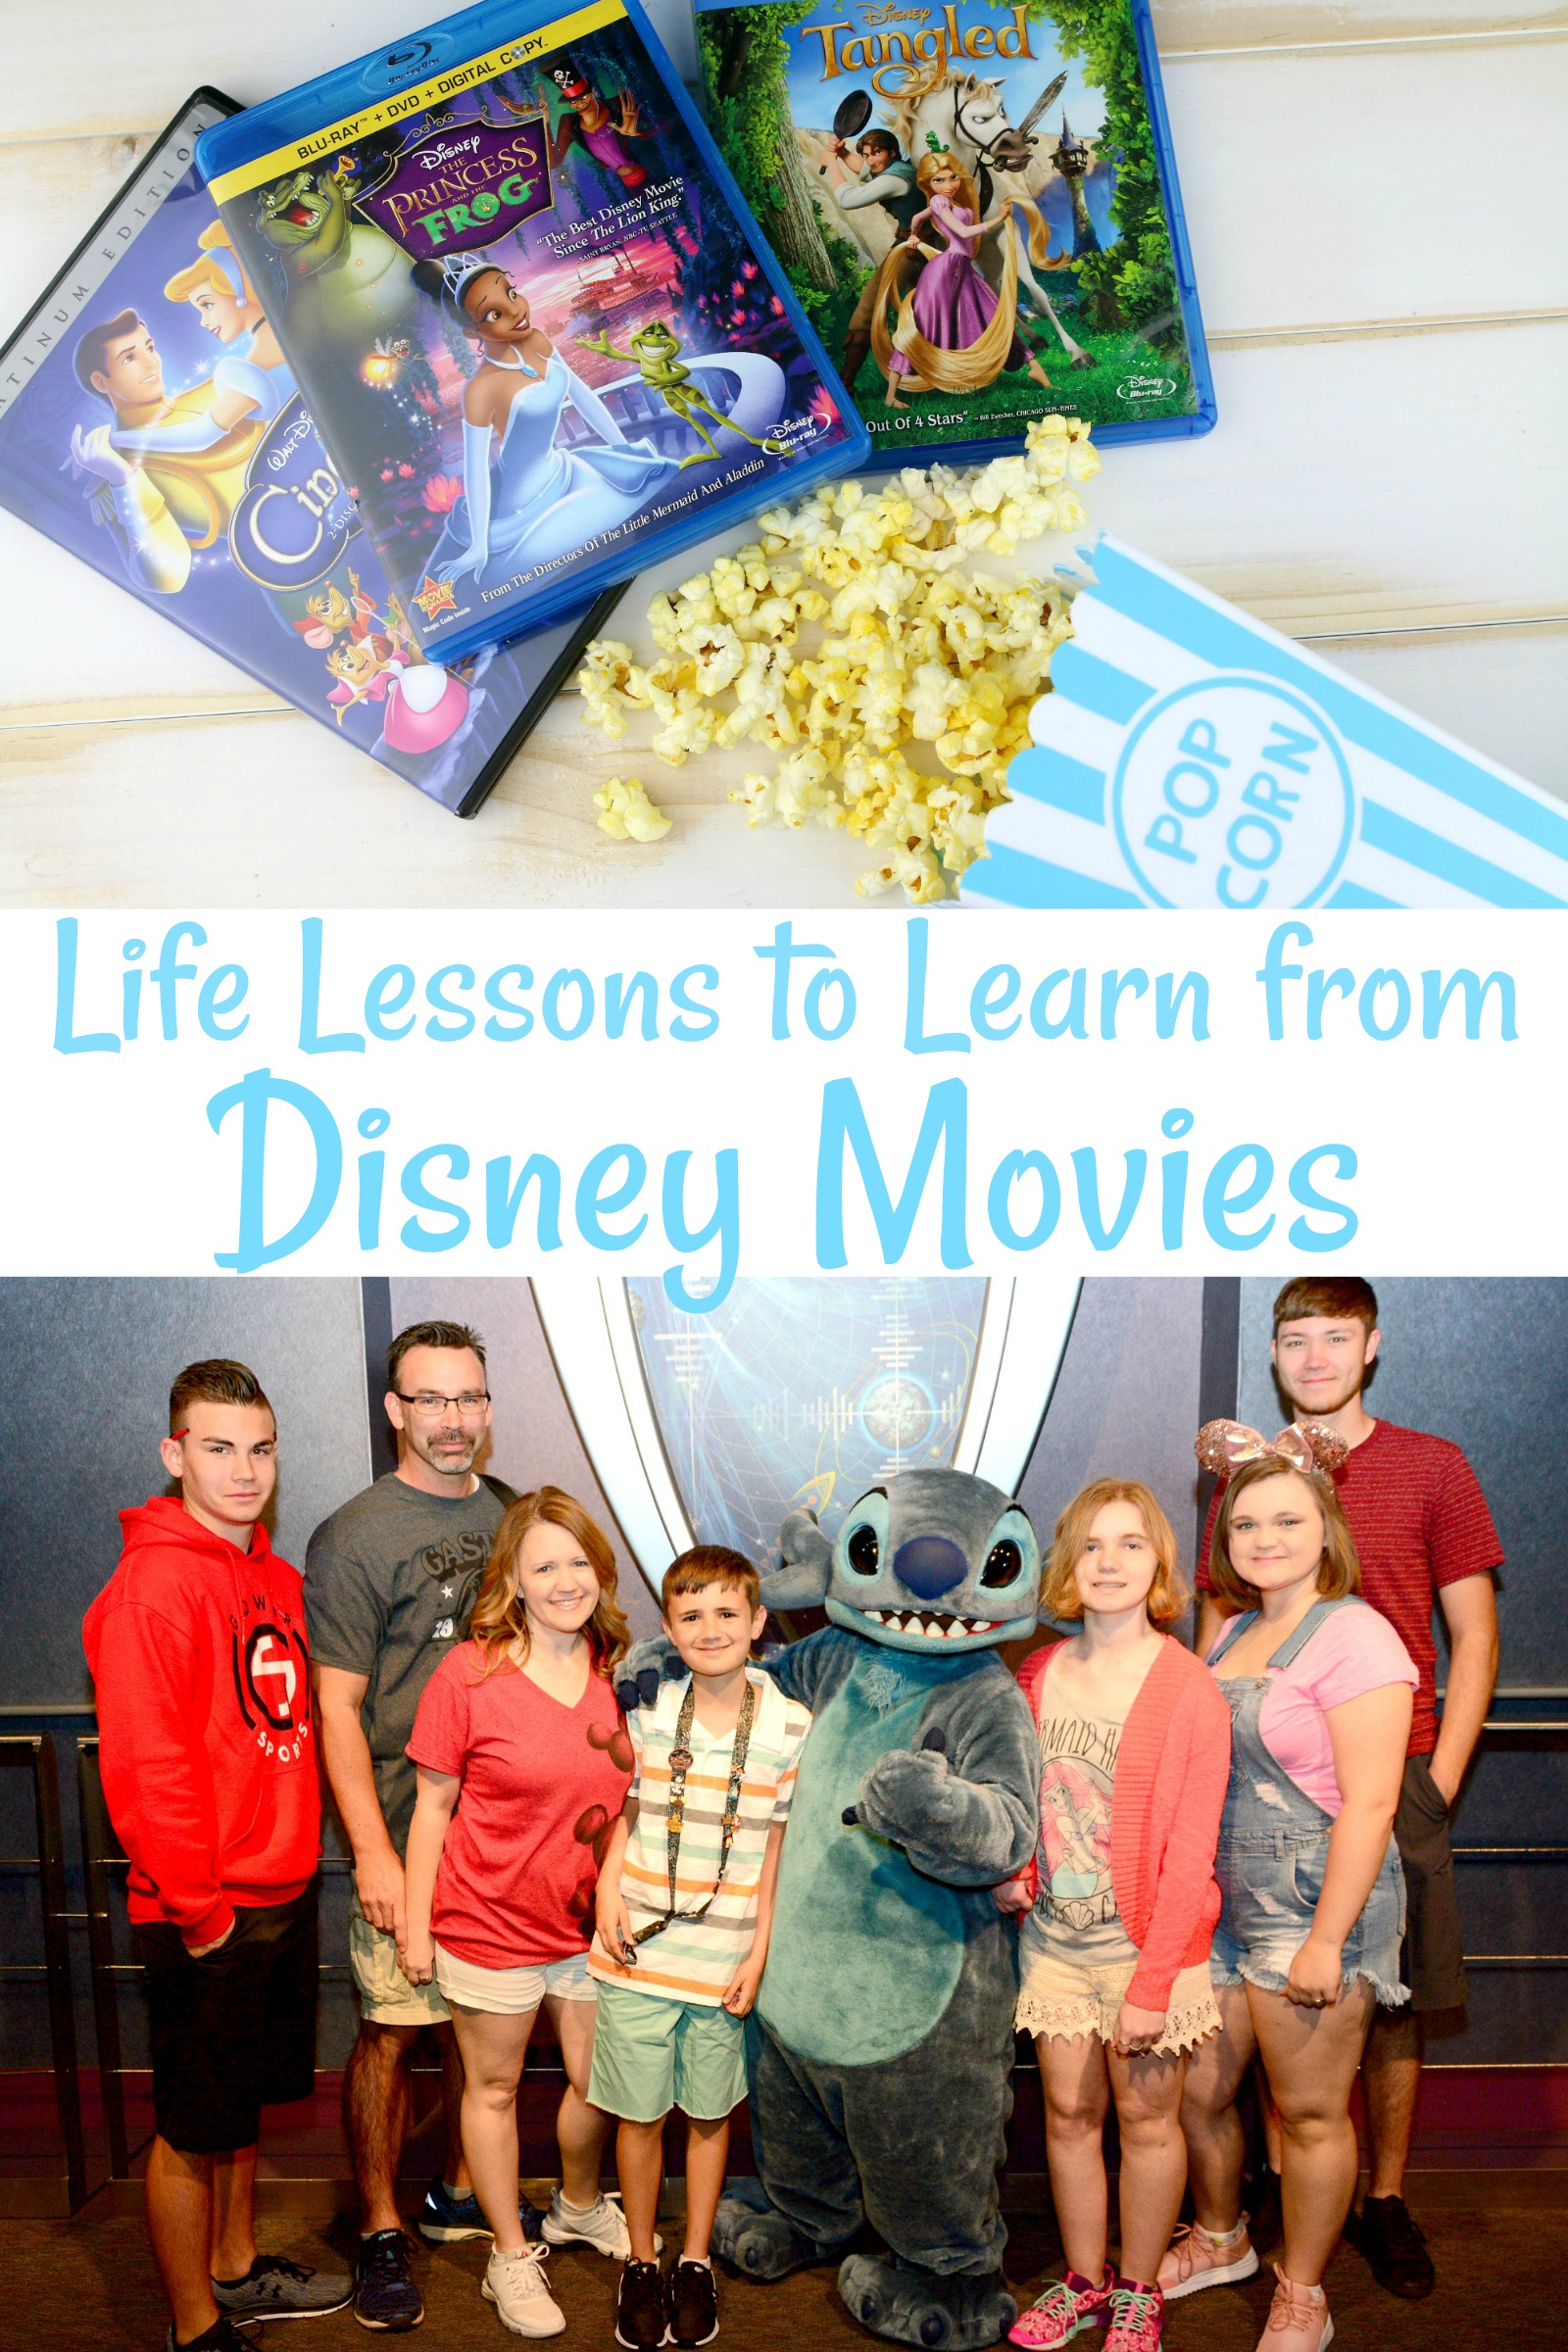 Disney Movie Life Lessons